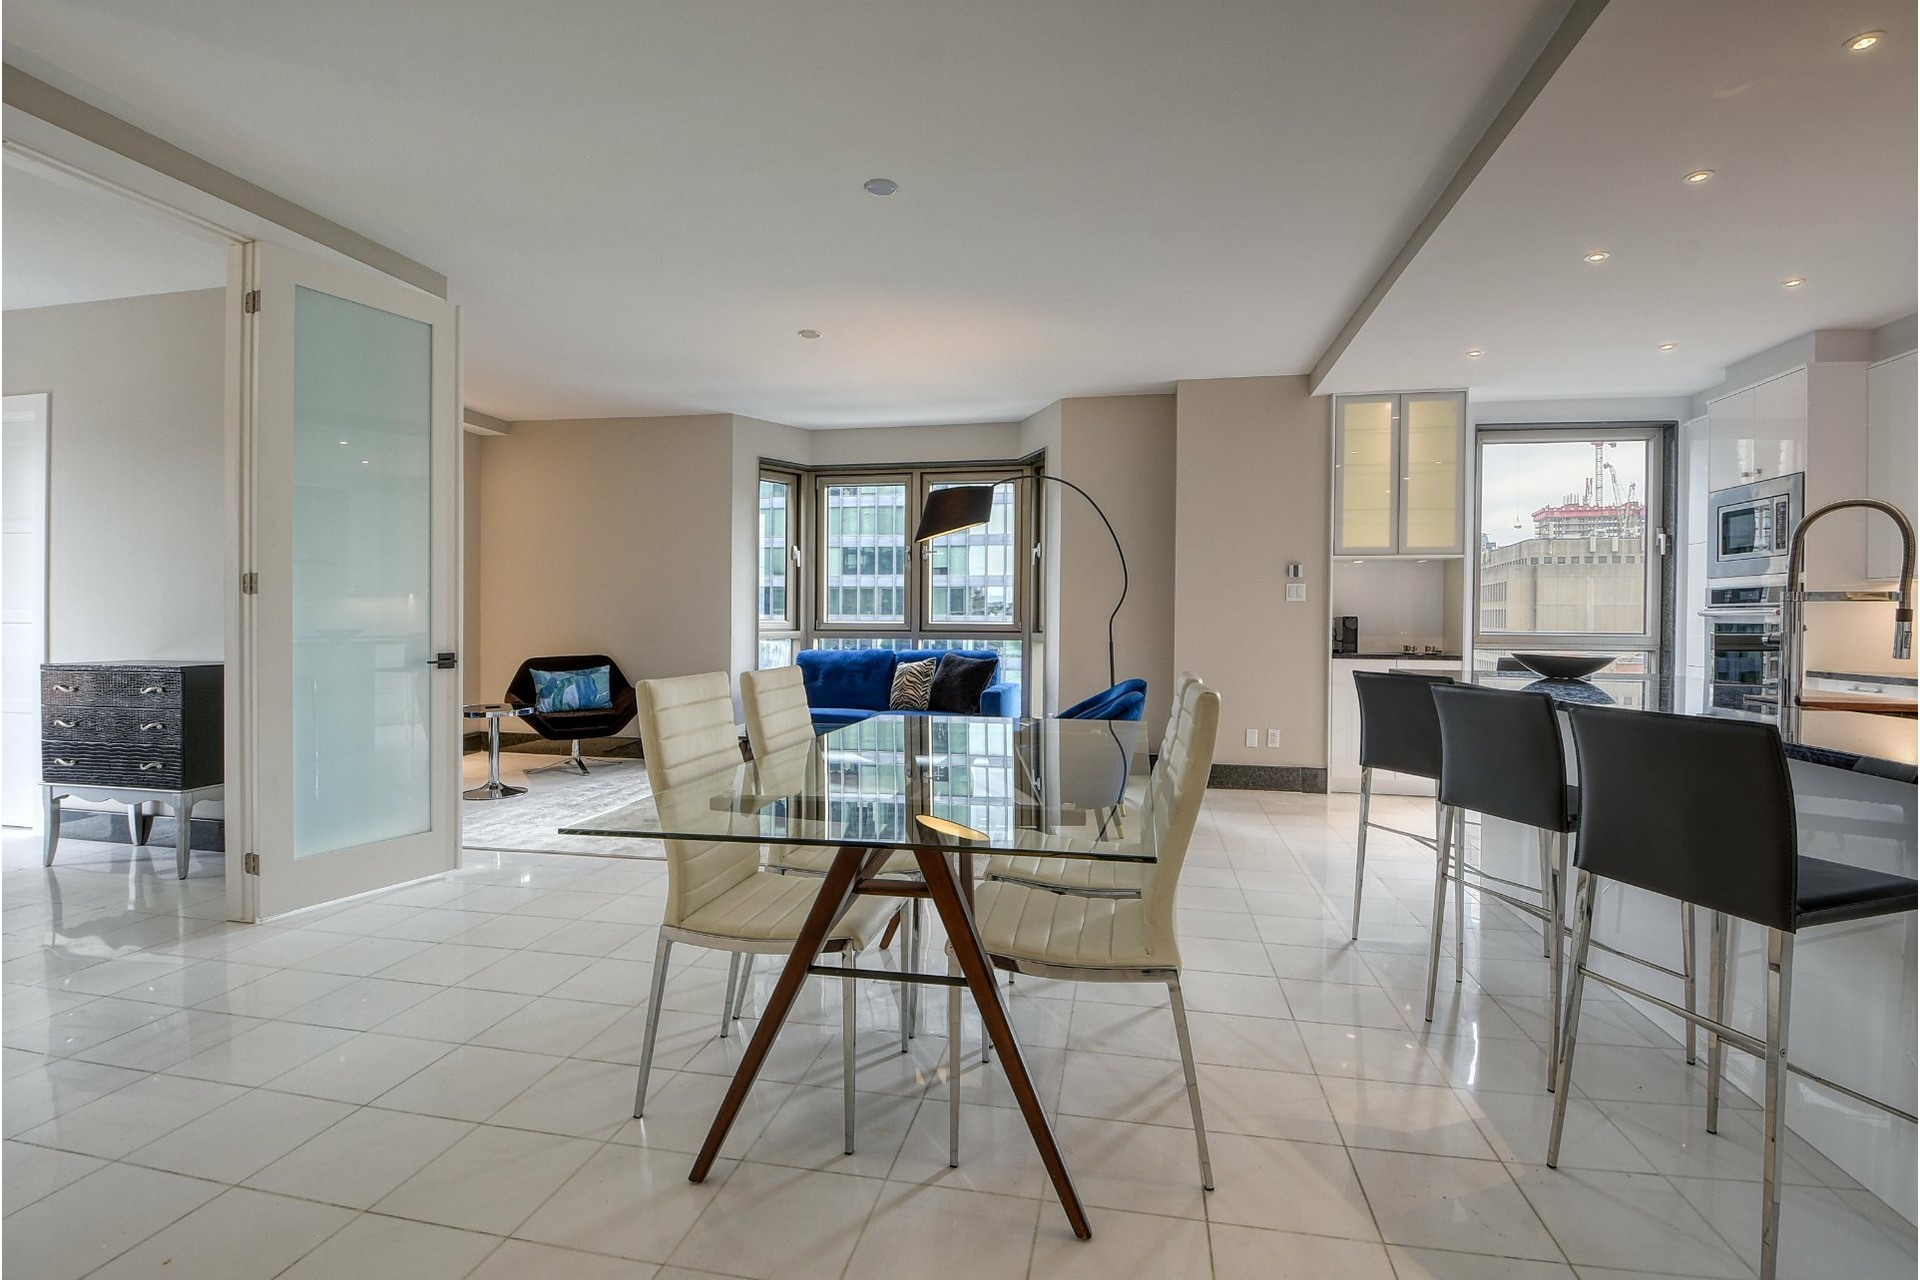 image 5 - Apartment For sale Westmount - 7 rooms